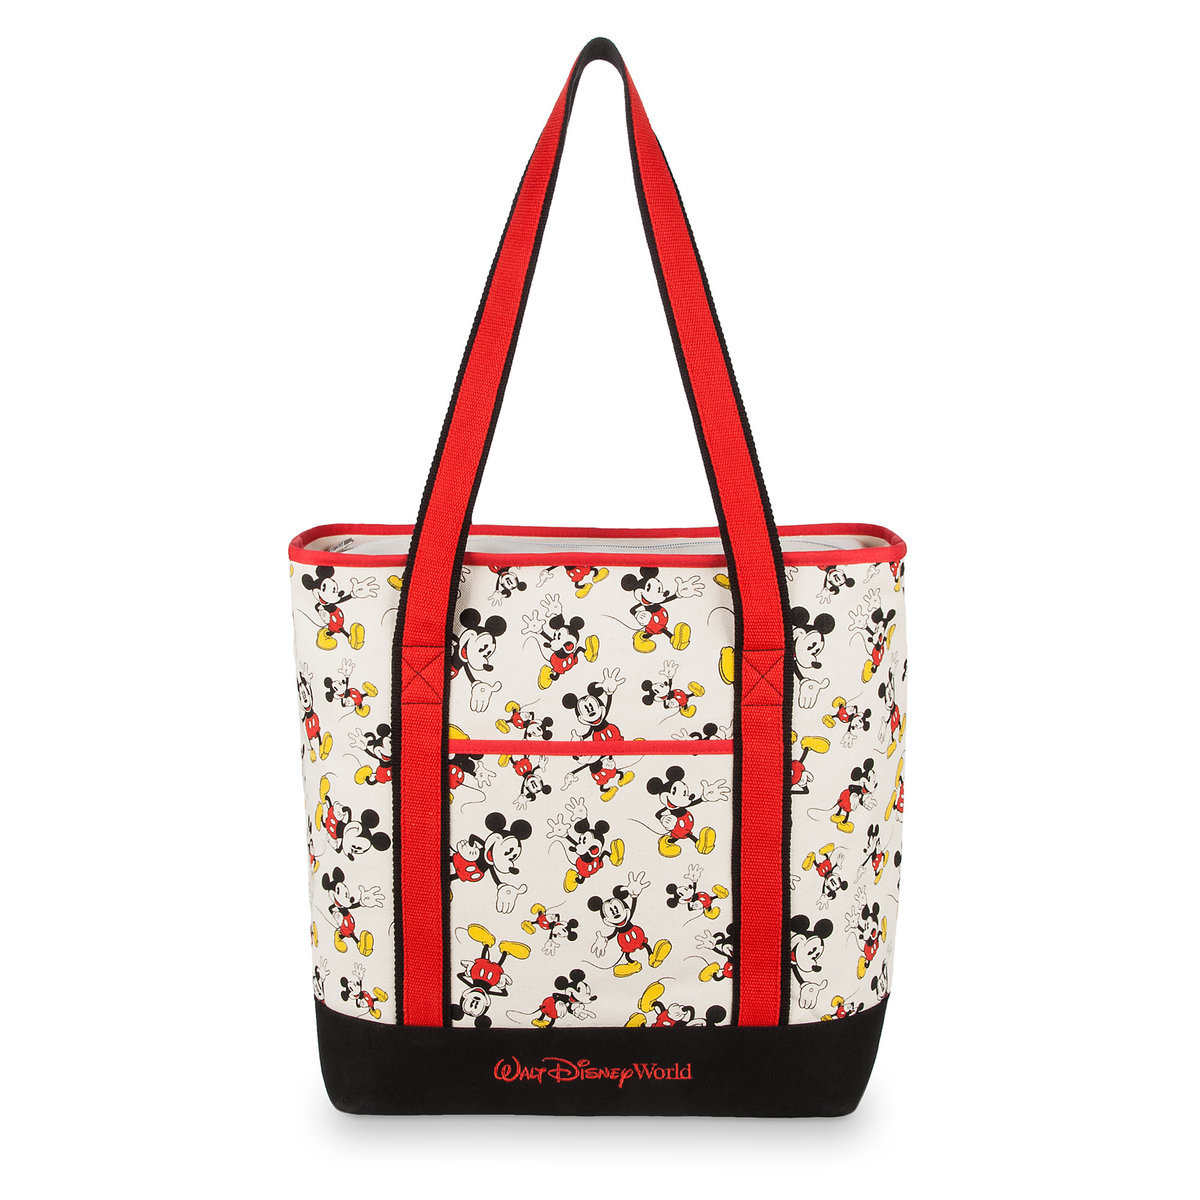 696112cf729 Product Image of Mickey Mouse Canvas Tote Bag - Walt Disney World # 1